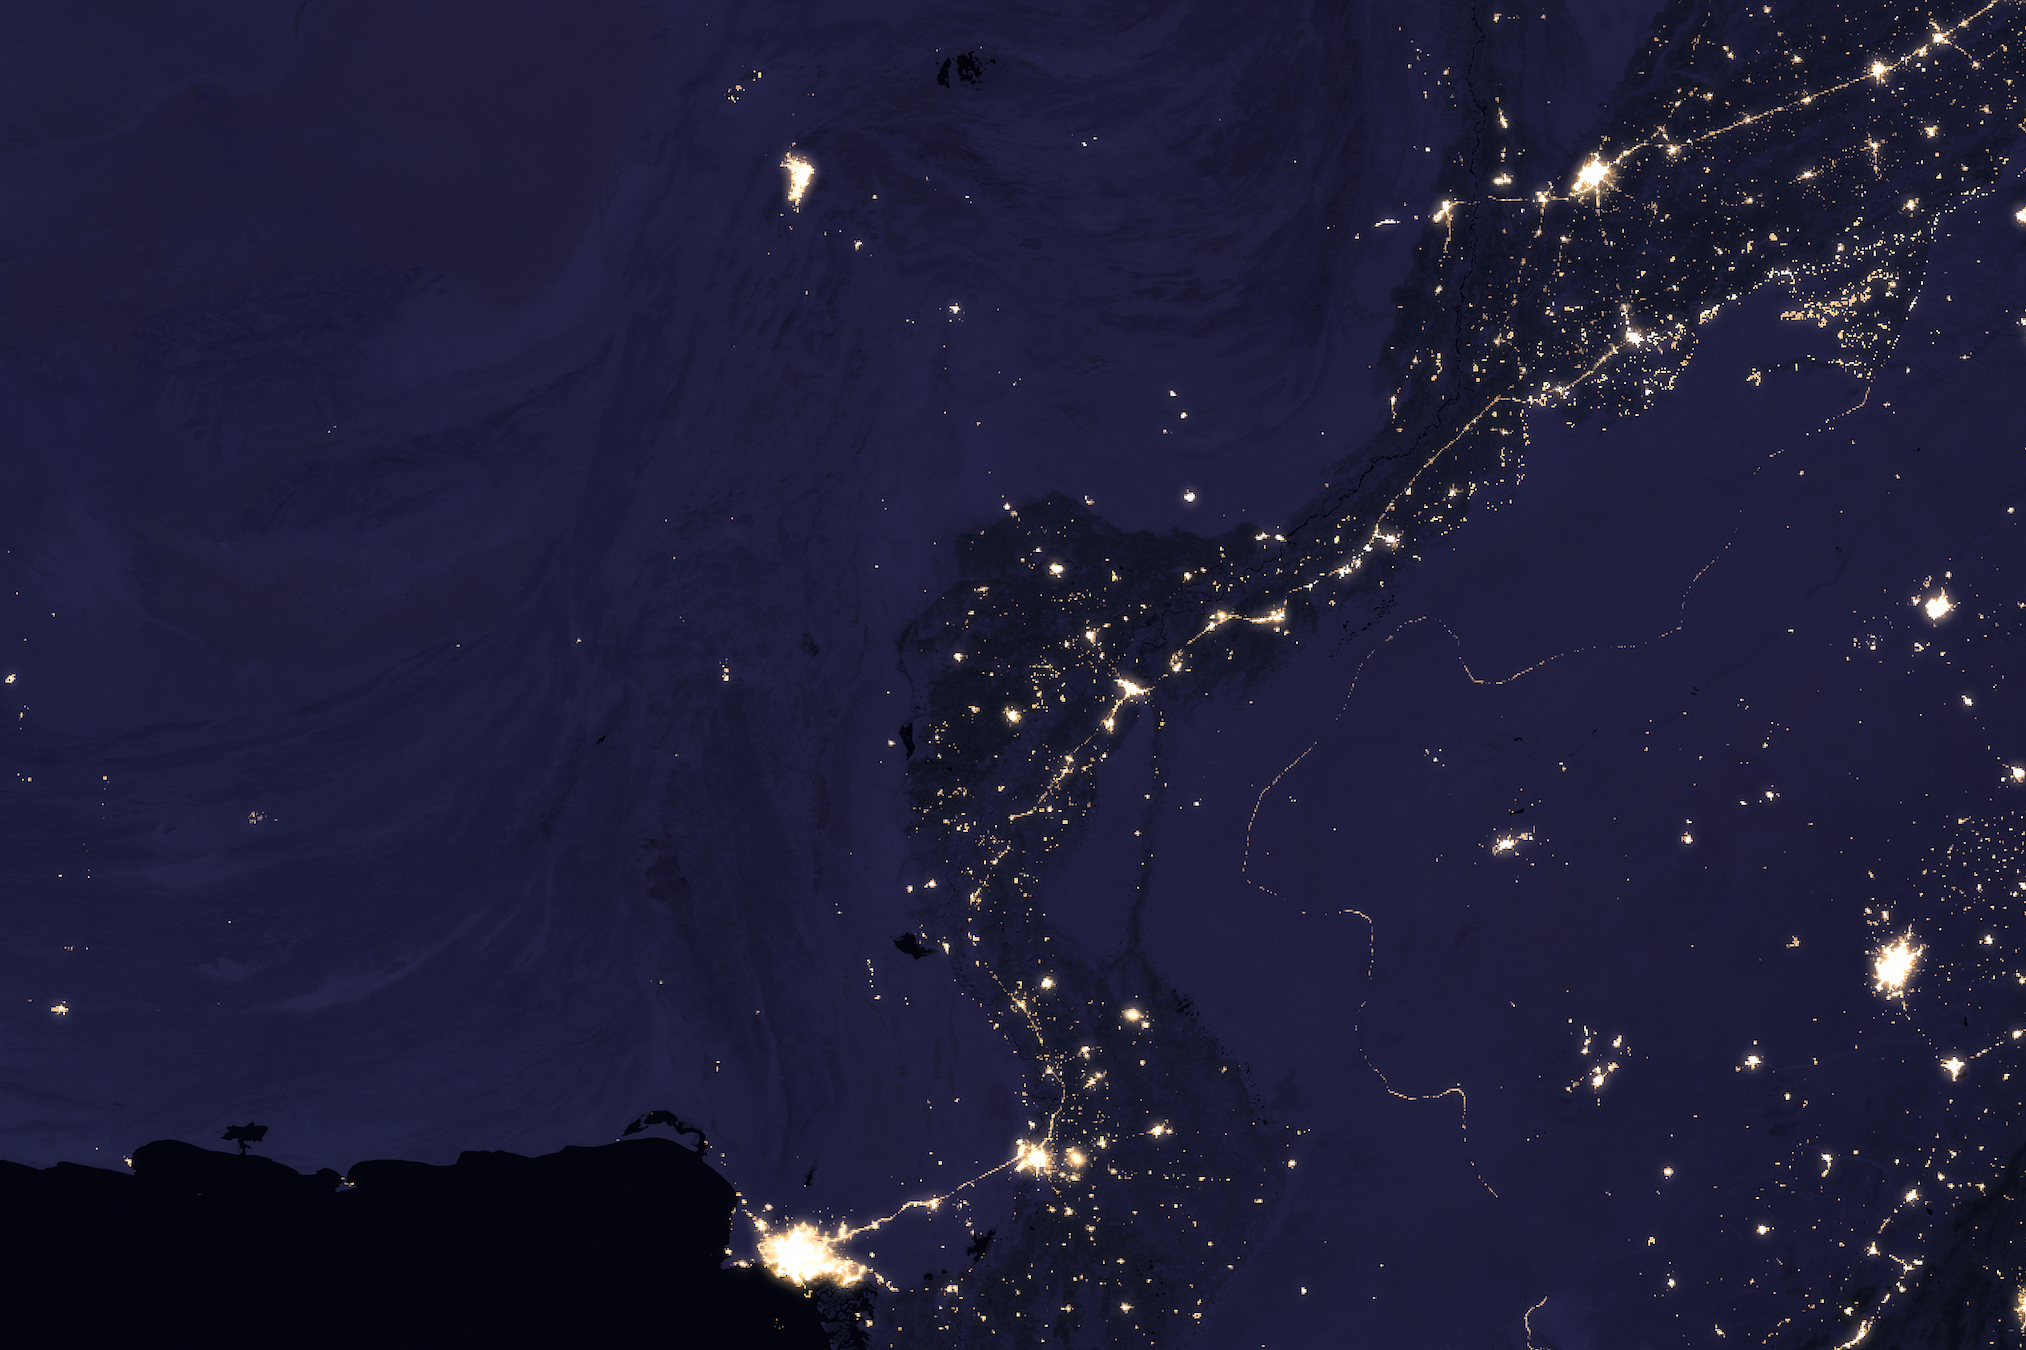 Today's Image of the Day comes thanks to the NASA Earth Observatory and features a look at the Indus River glowing at night.